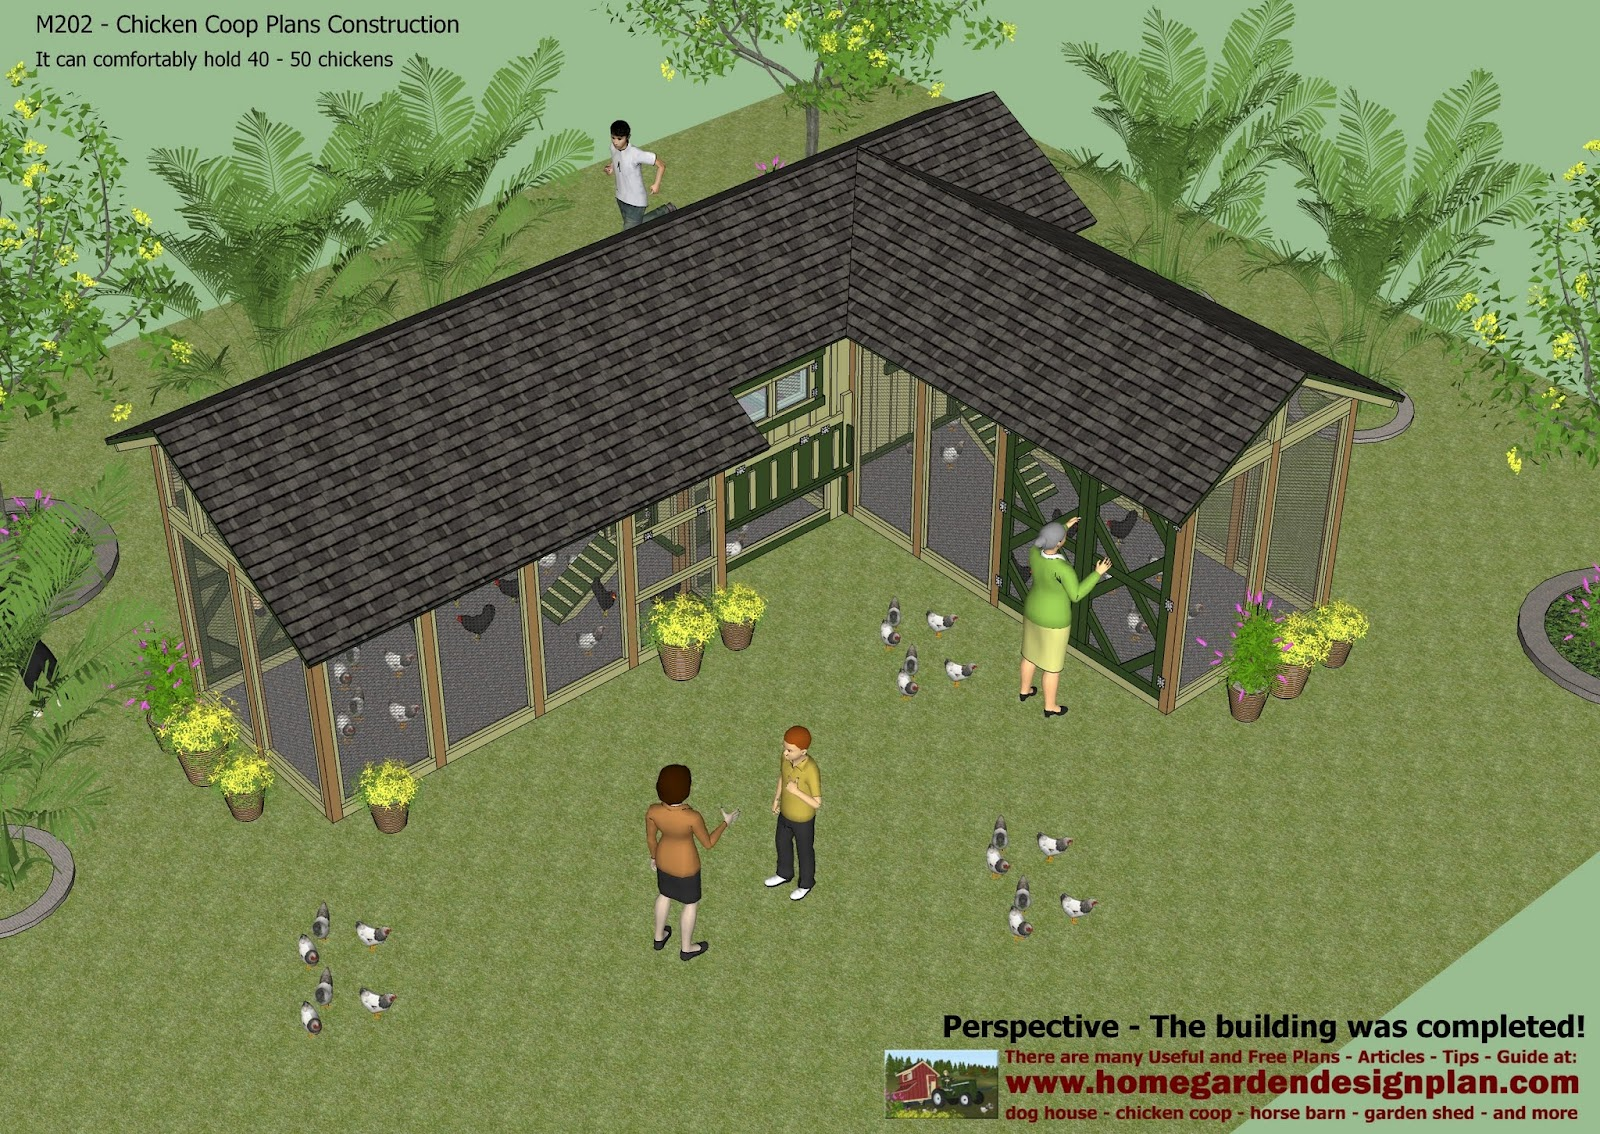 Chicken House Plans For 50 Chickens Home Garden Plans M202  Chicken Coop Plans Construction